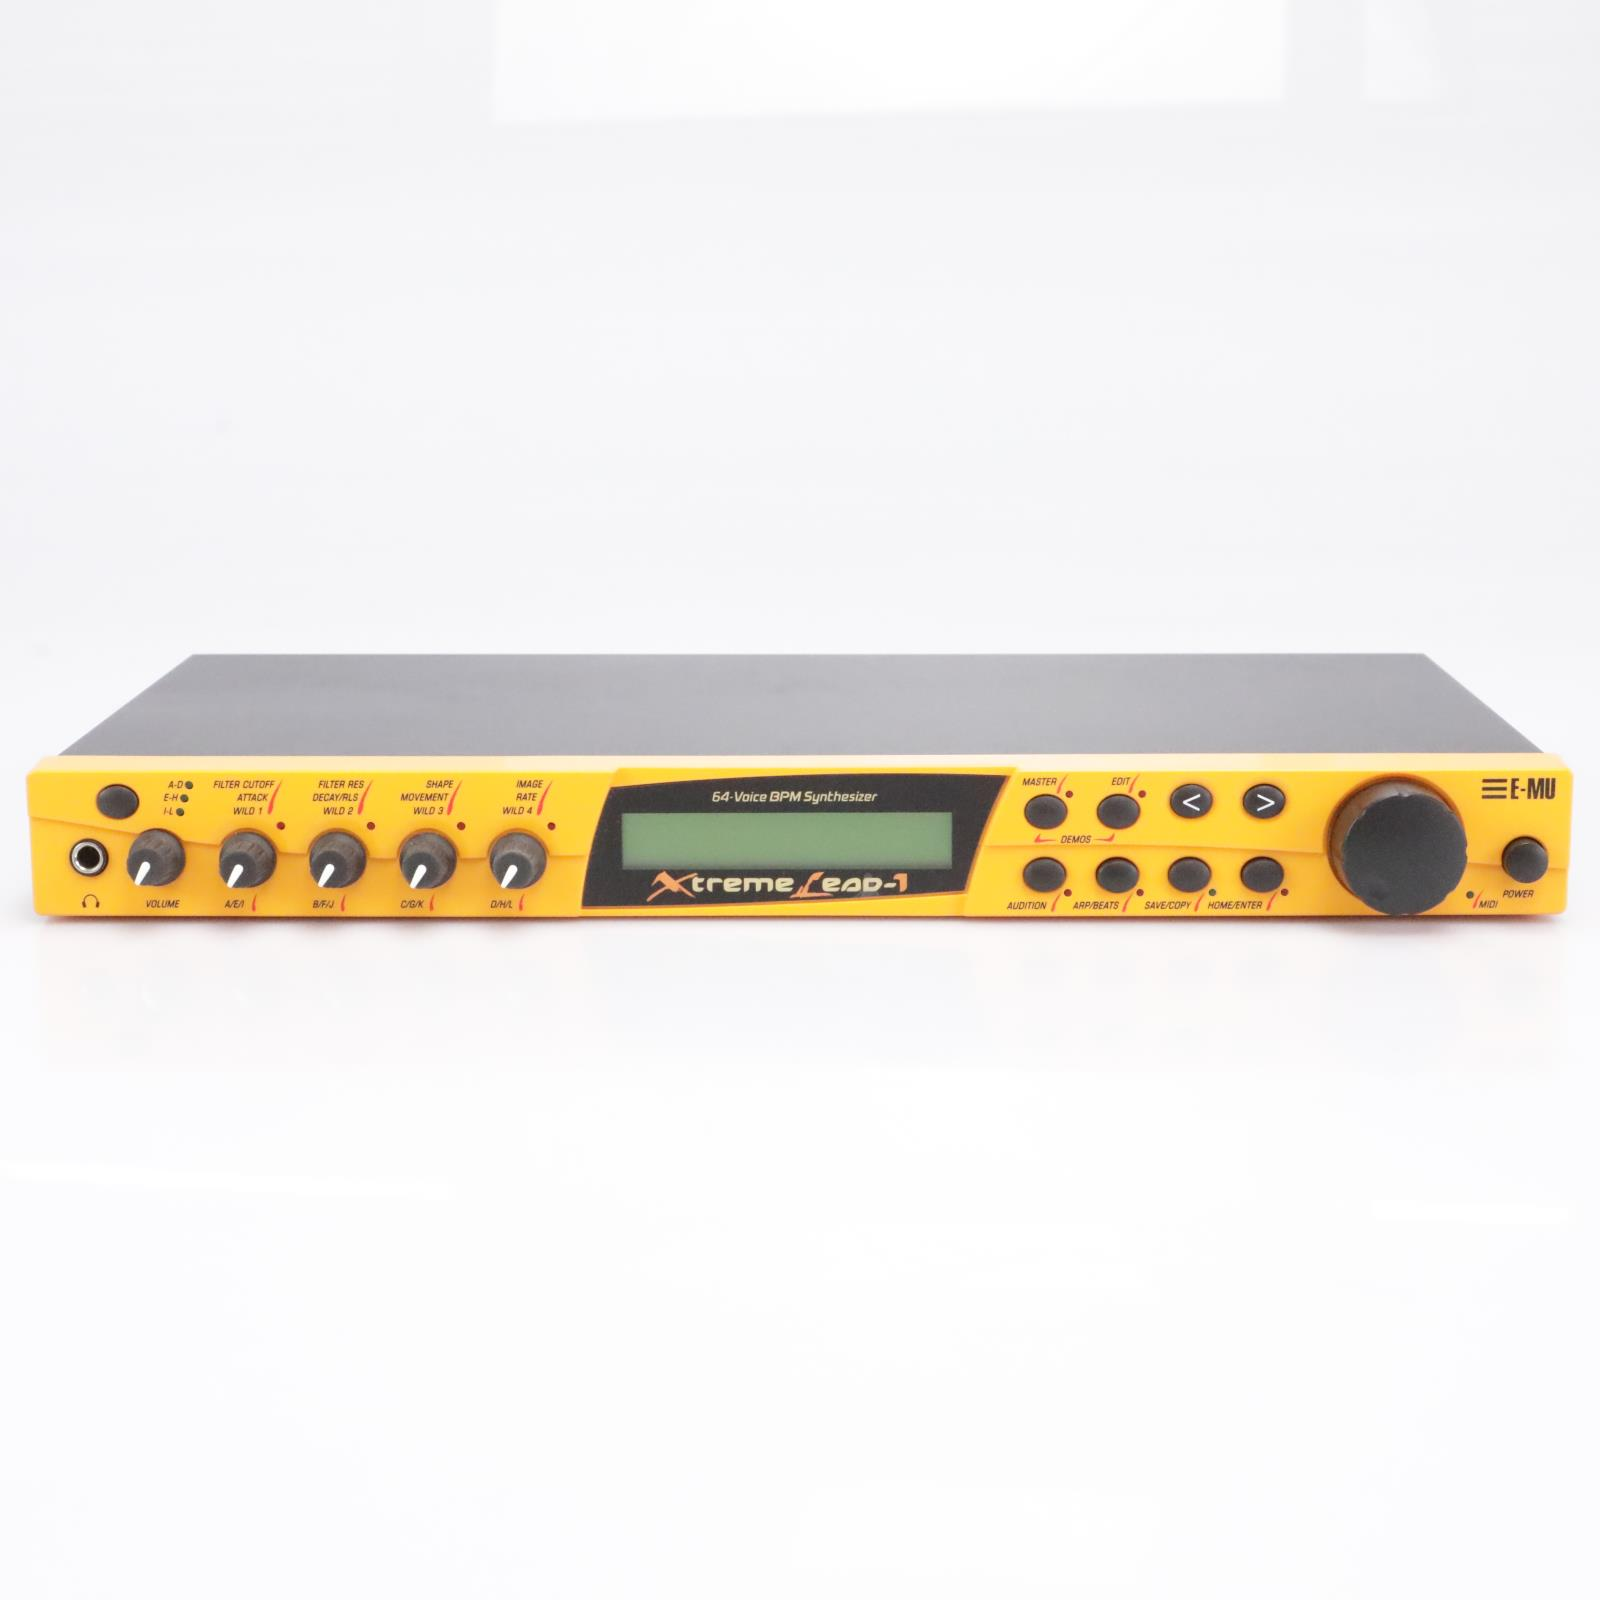 E-mu Systems Xtreme Lead-1 9110 64-Voice Rackmount Synthesizer #42823